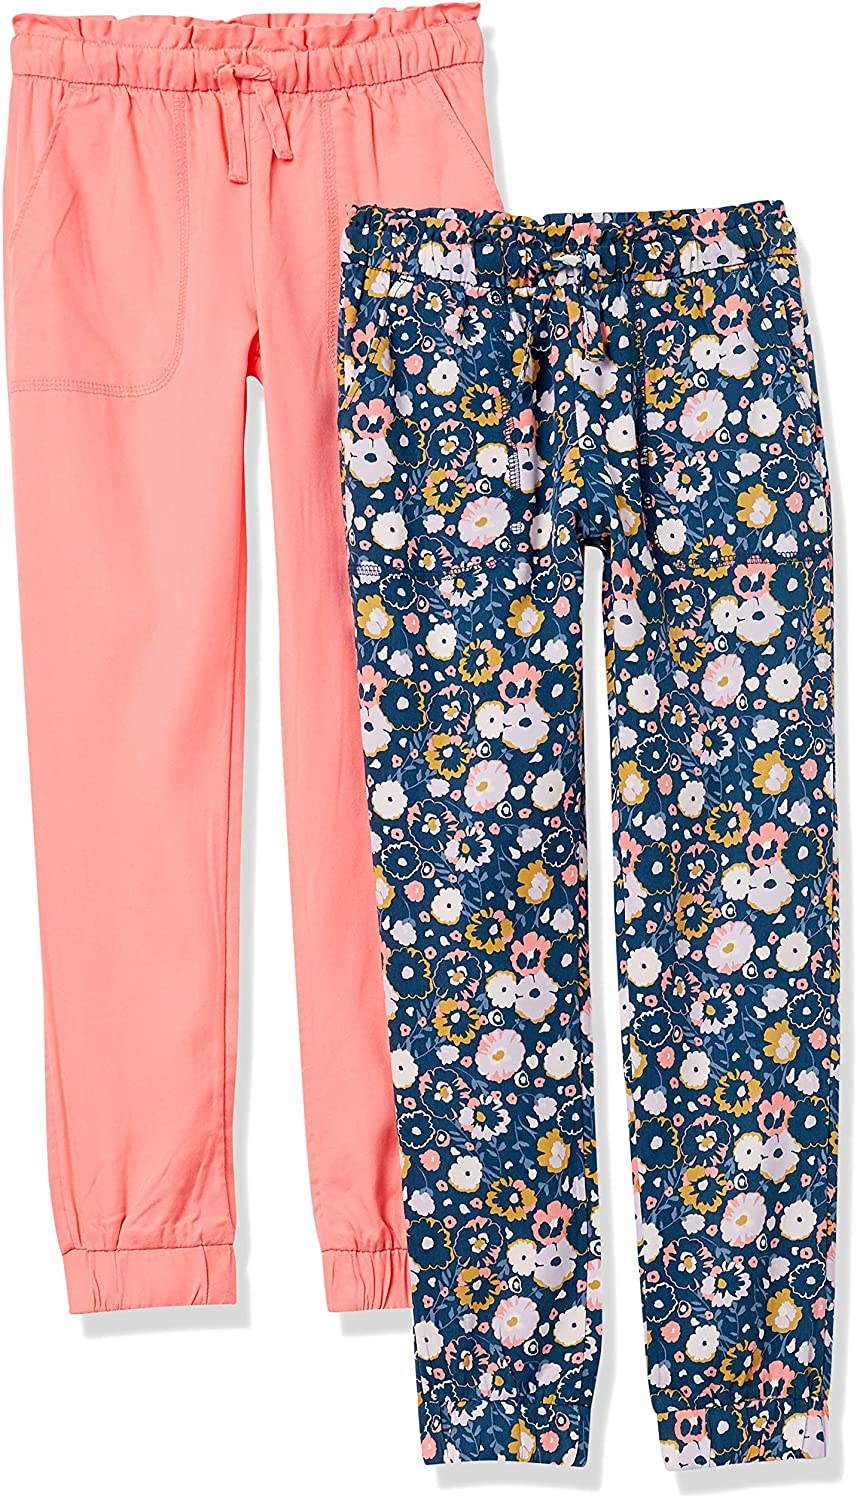 Amazon Essentials Purchase Girls' Play Pants Soft Outlet ☆ Free Shipping